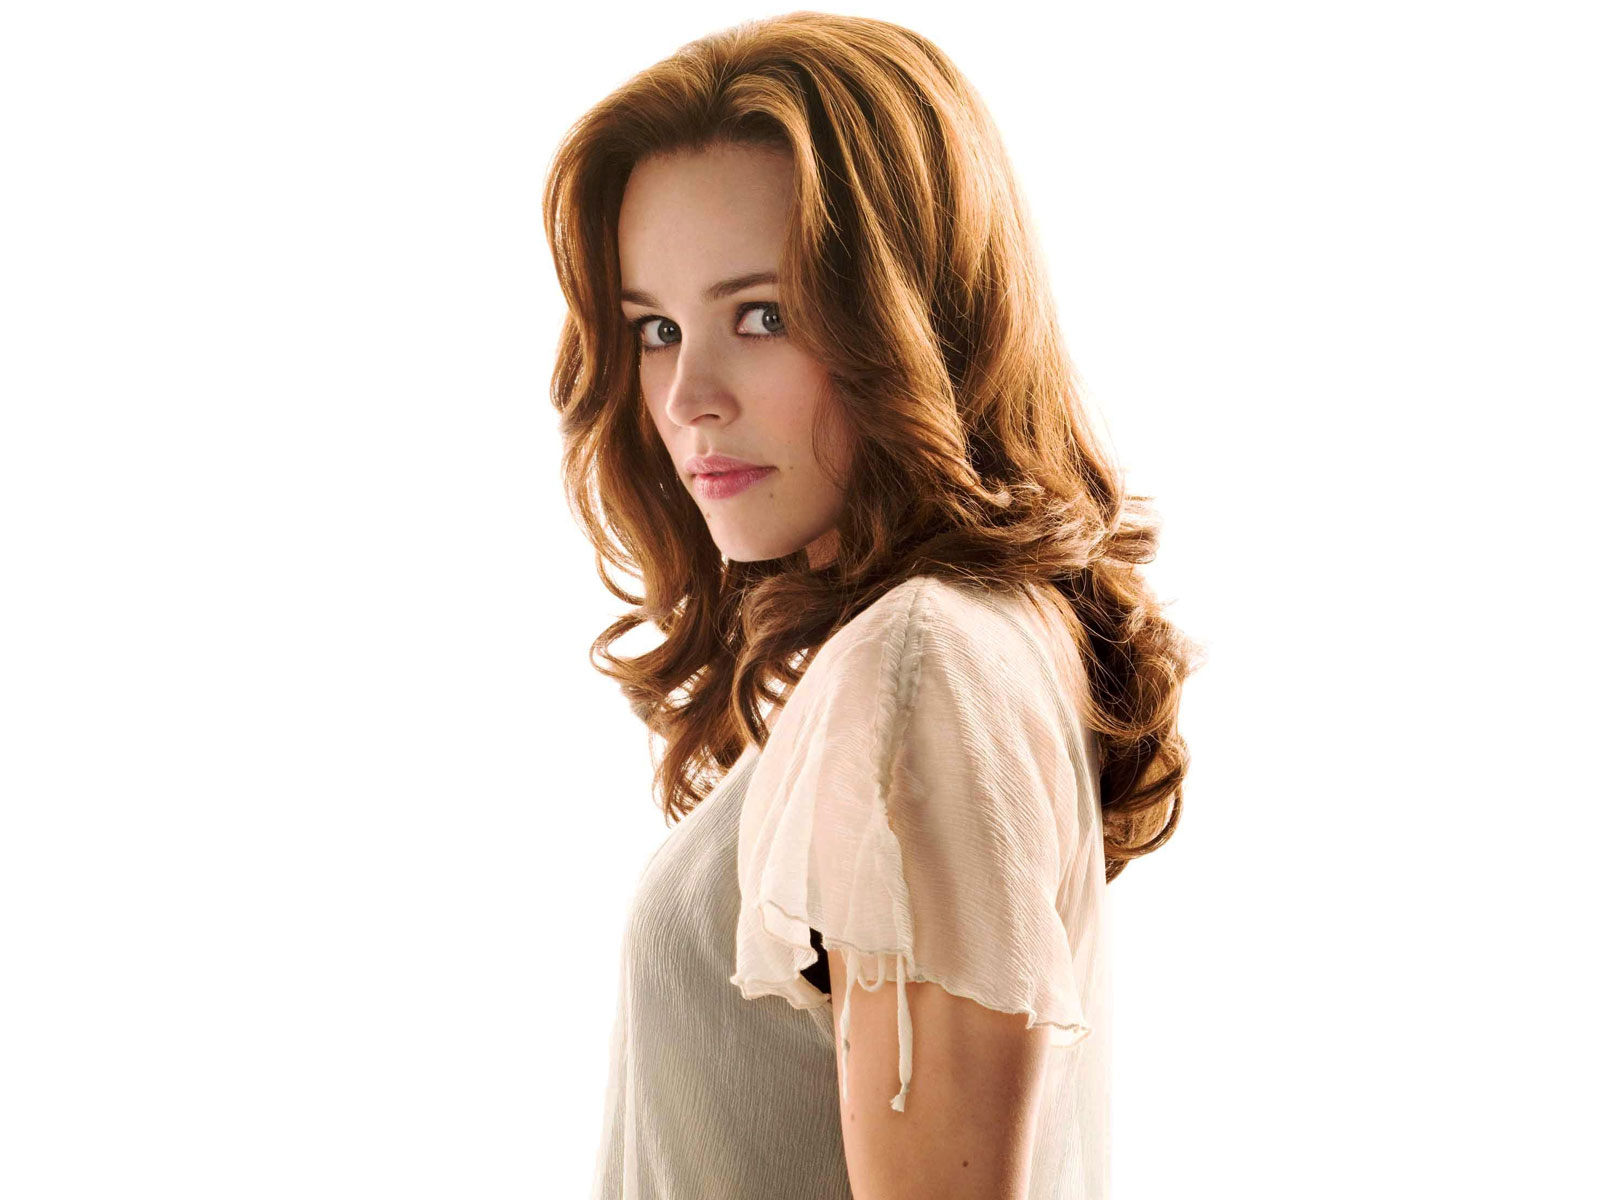 Rachel Mcadams The Notebook 2808.4 Kb